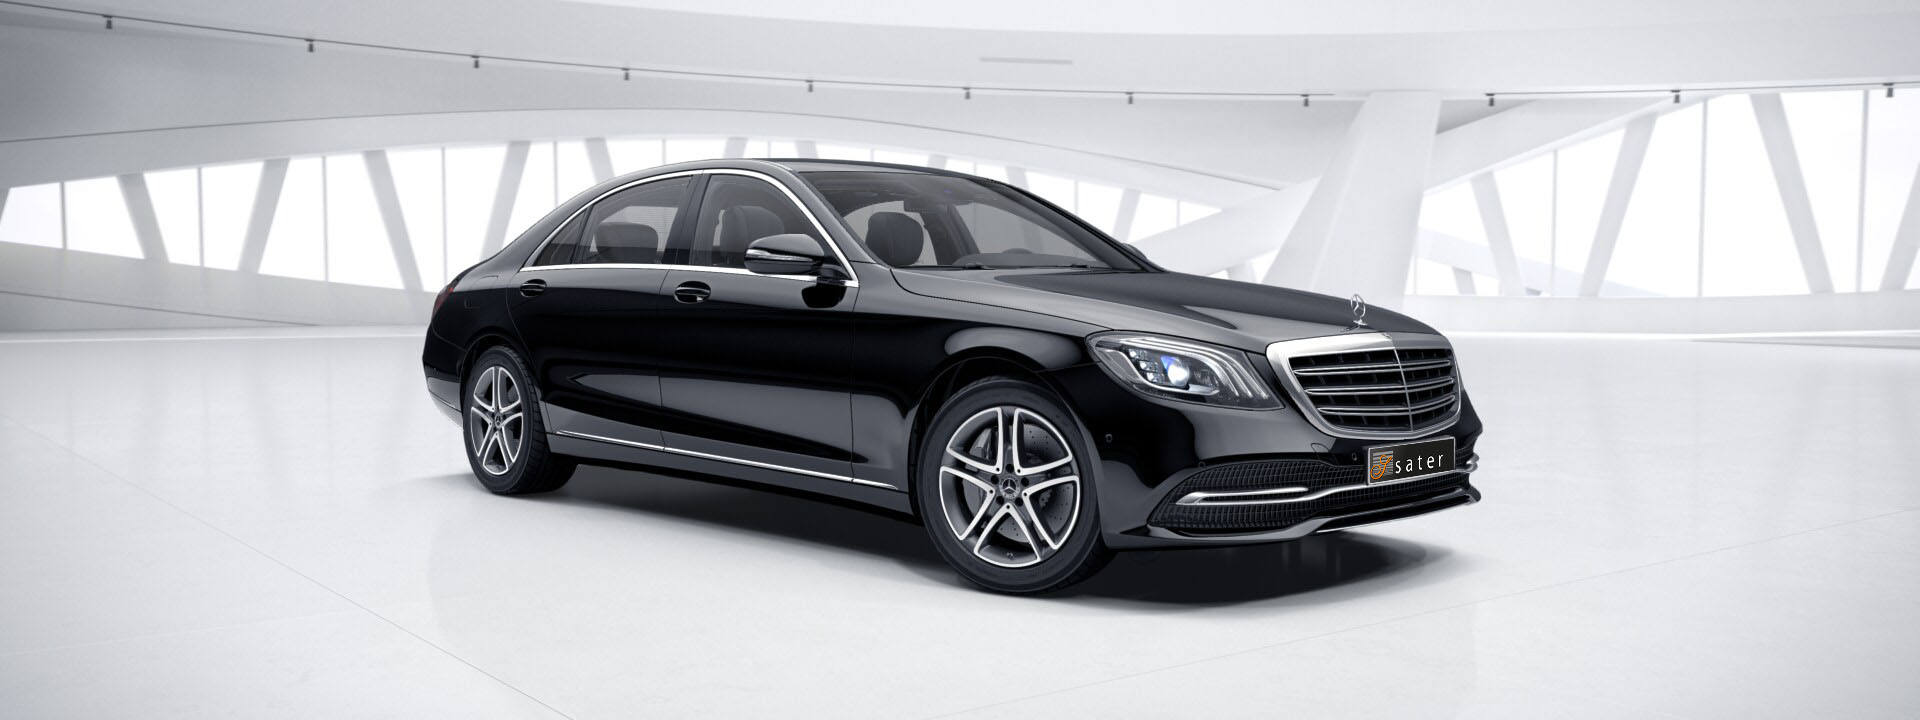 chauffeur-driven car hire service Rome